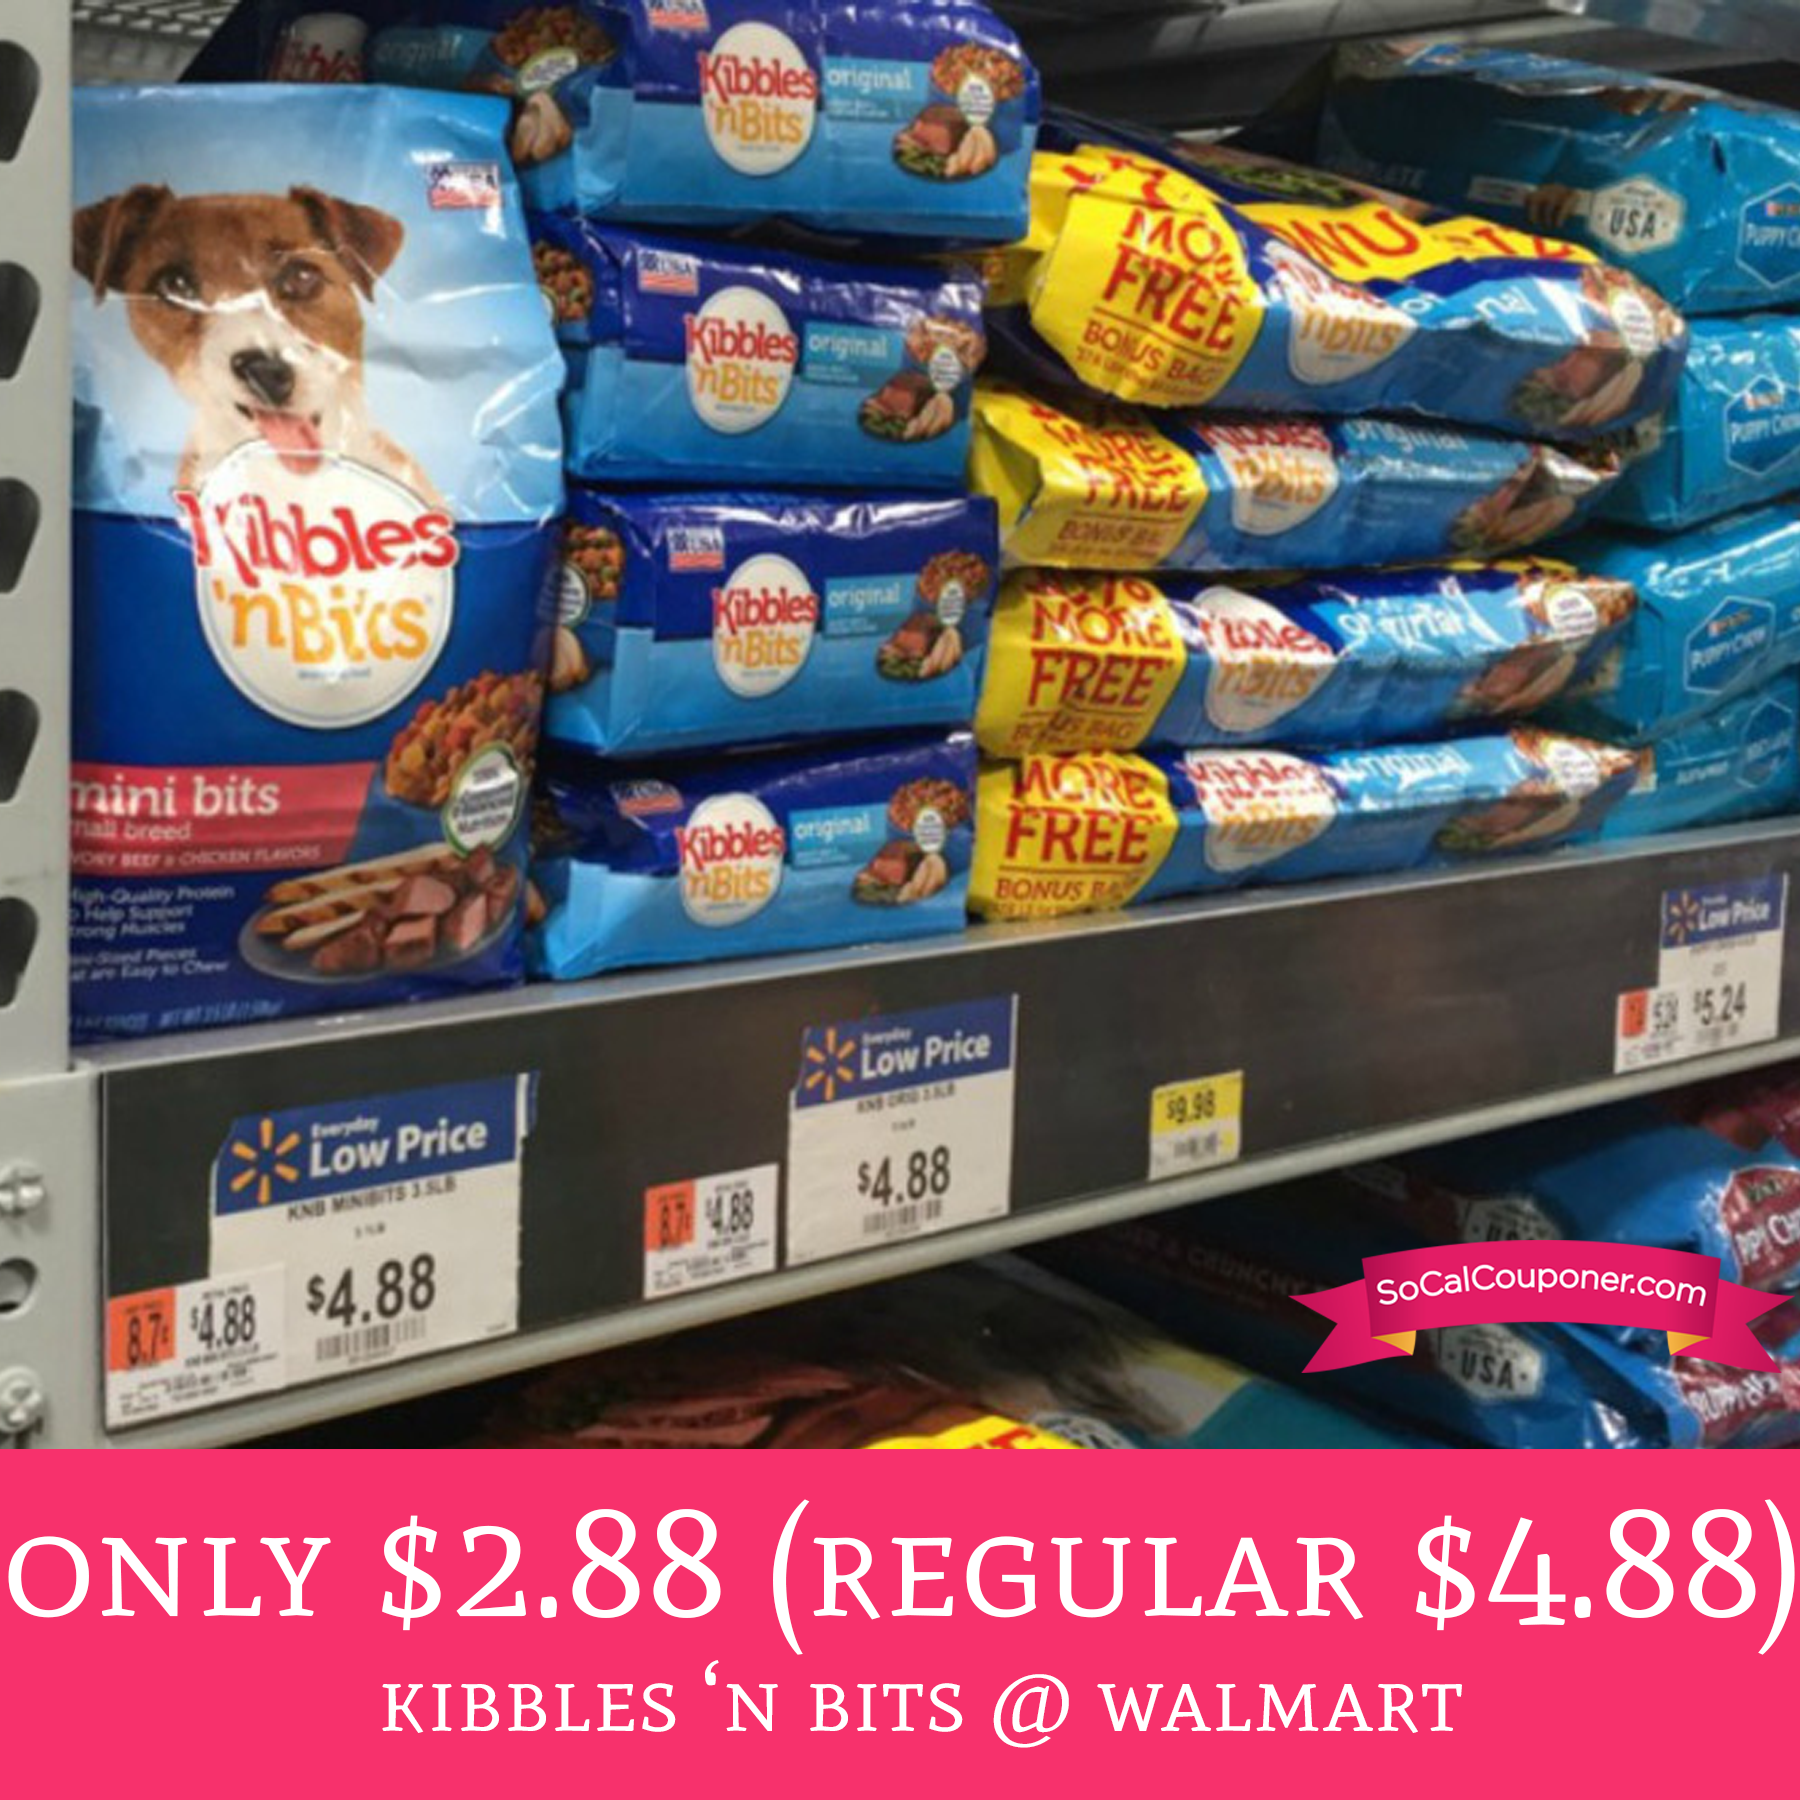 graphic relating to Kibbles and Bits Printable Coupons referred to as Merely $2.88 (Every month $4.88) Kibbles n Bits @ Walmart - Package